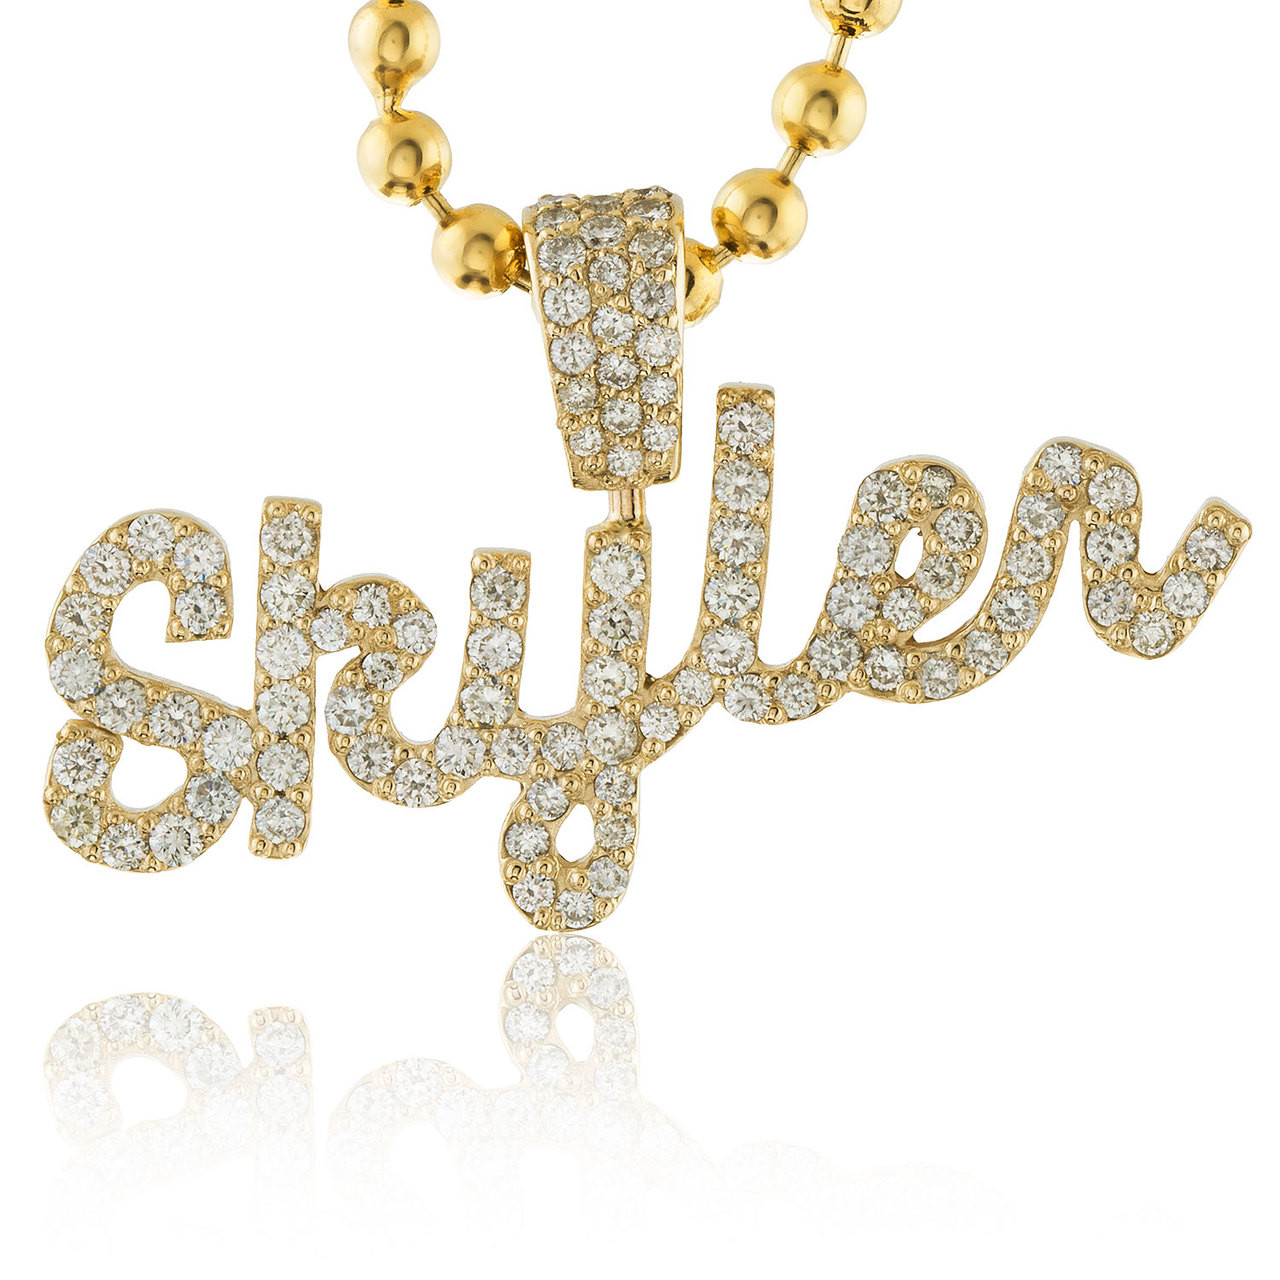 eb7b492af5175e 14k Yellow Gold Custom Diamond 'Skyler' Name Pendant - Shyne Jewelers